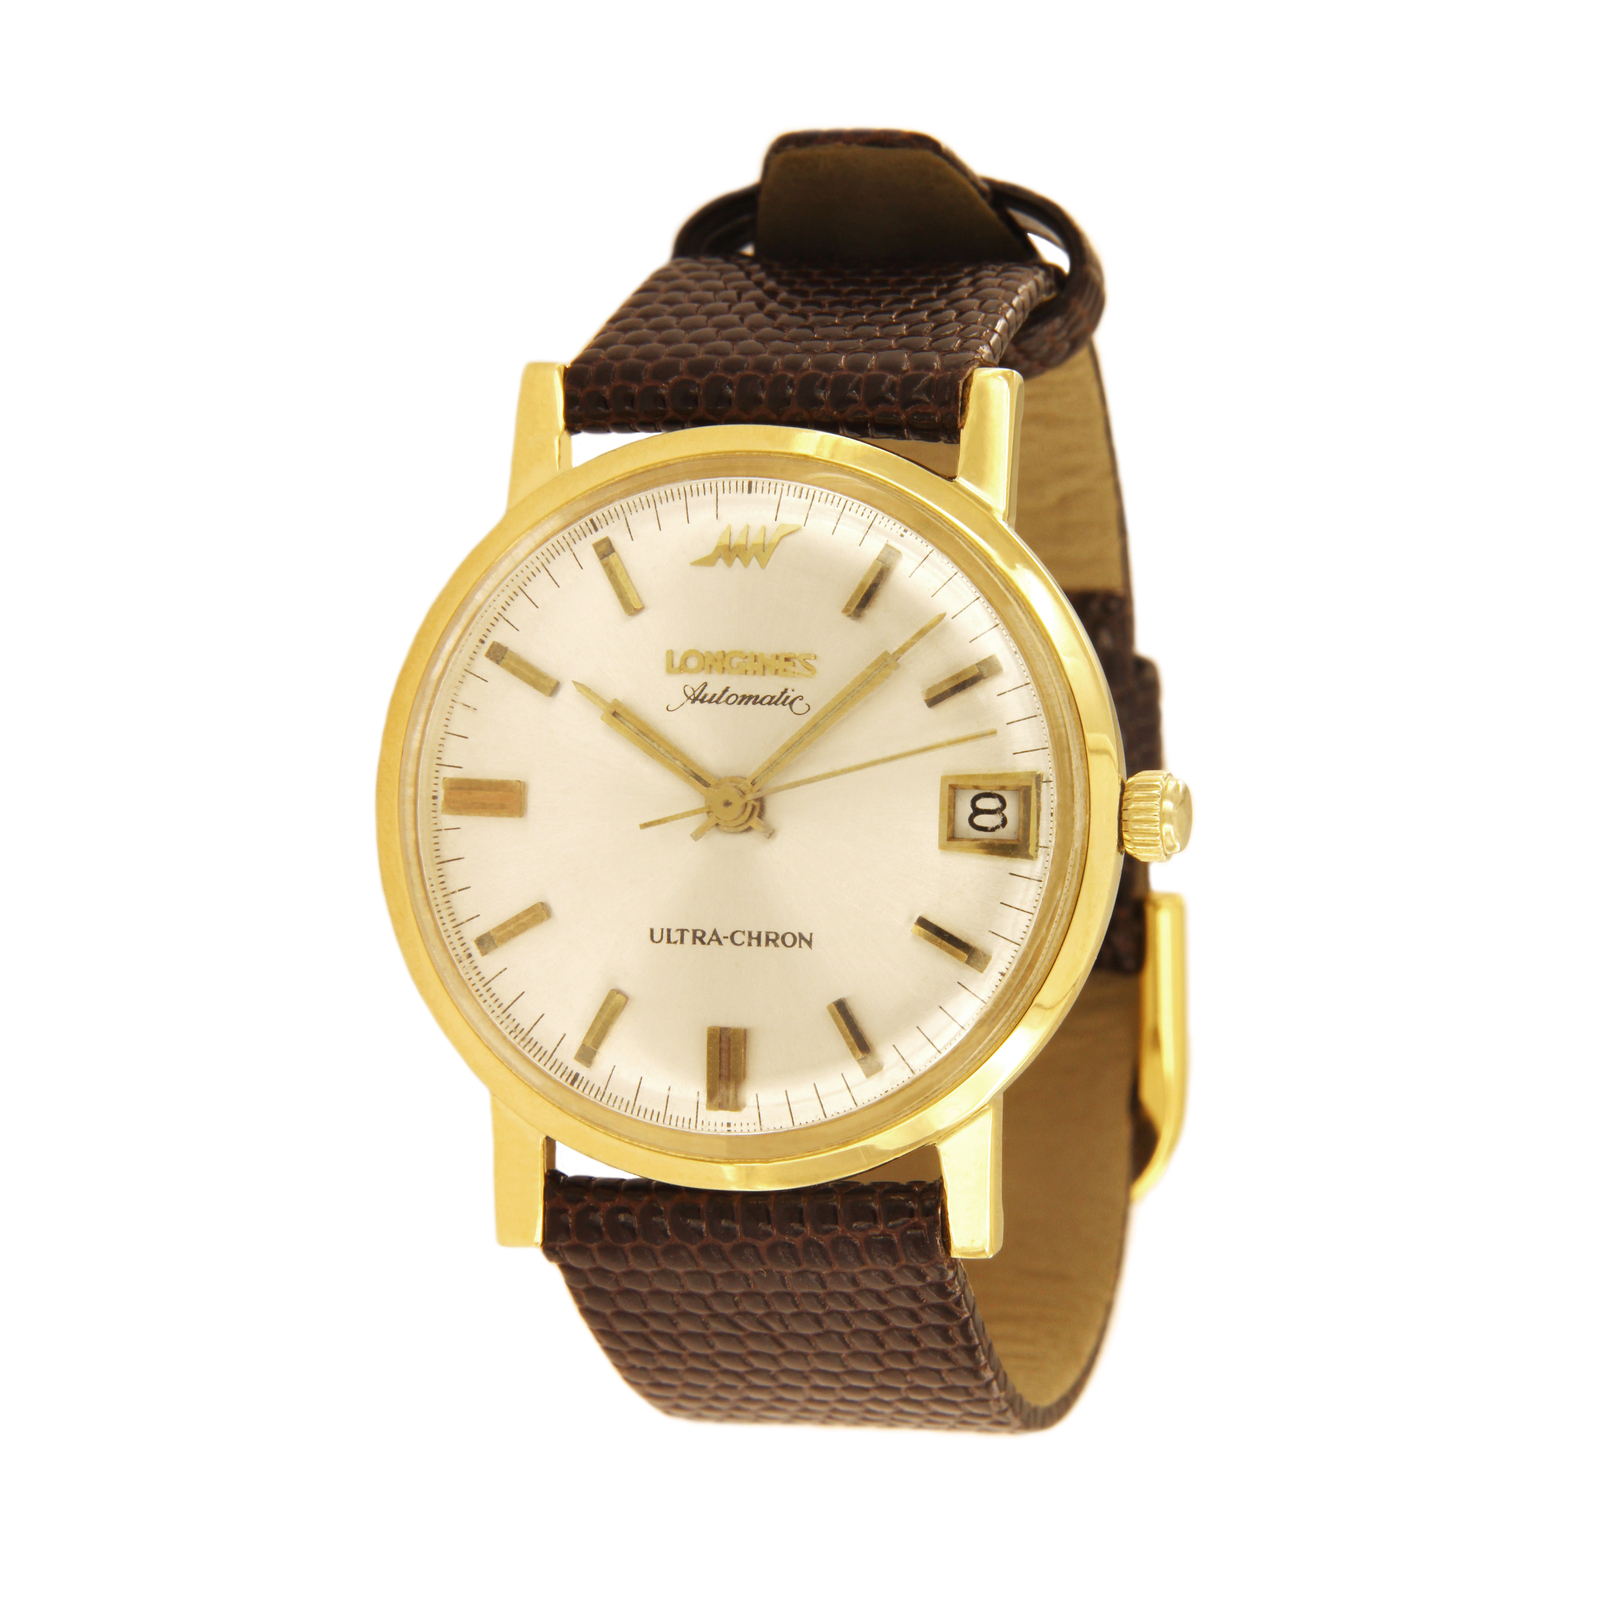 Primary image for Longines 18k Yellow Gold Automatic Ultra-Chron Watch